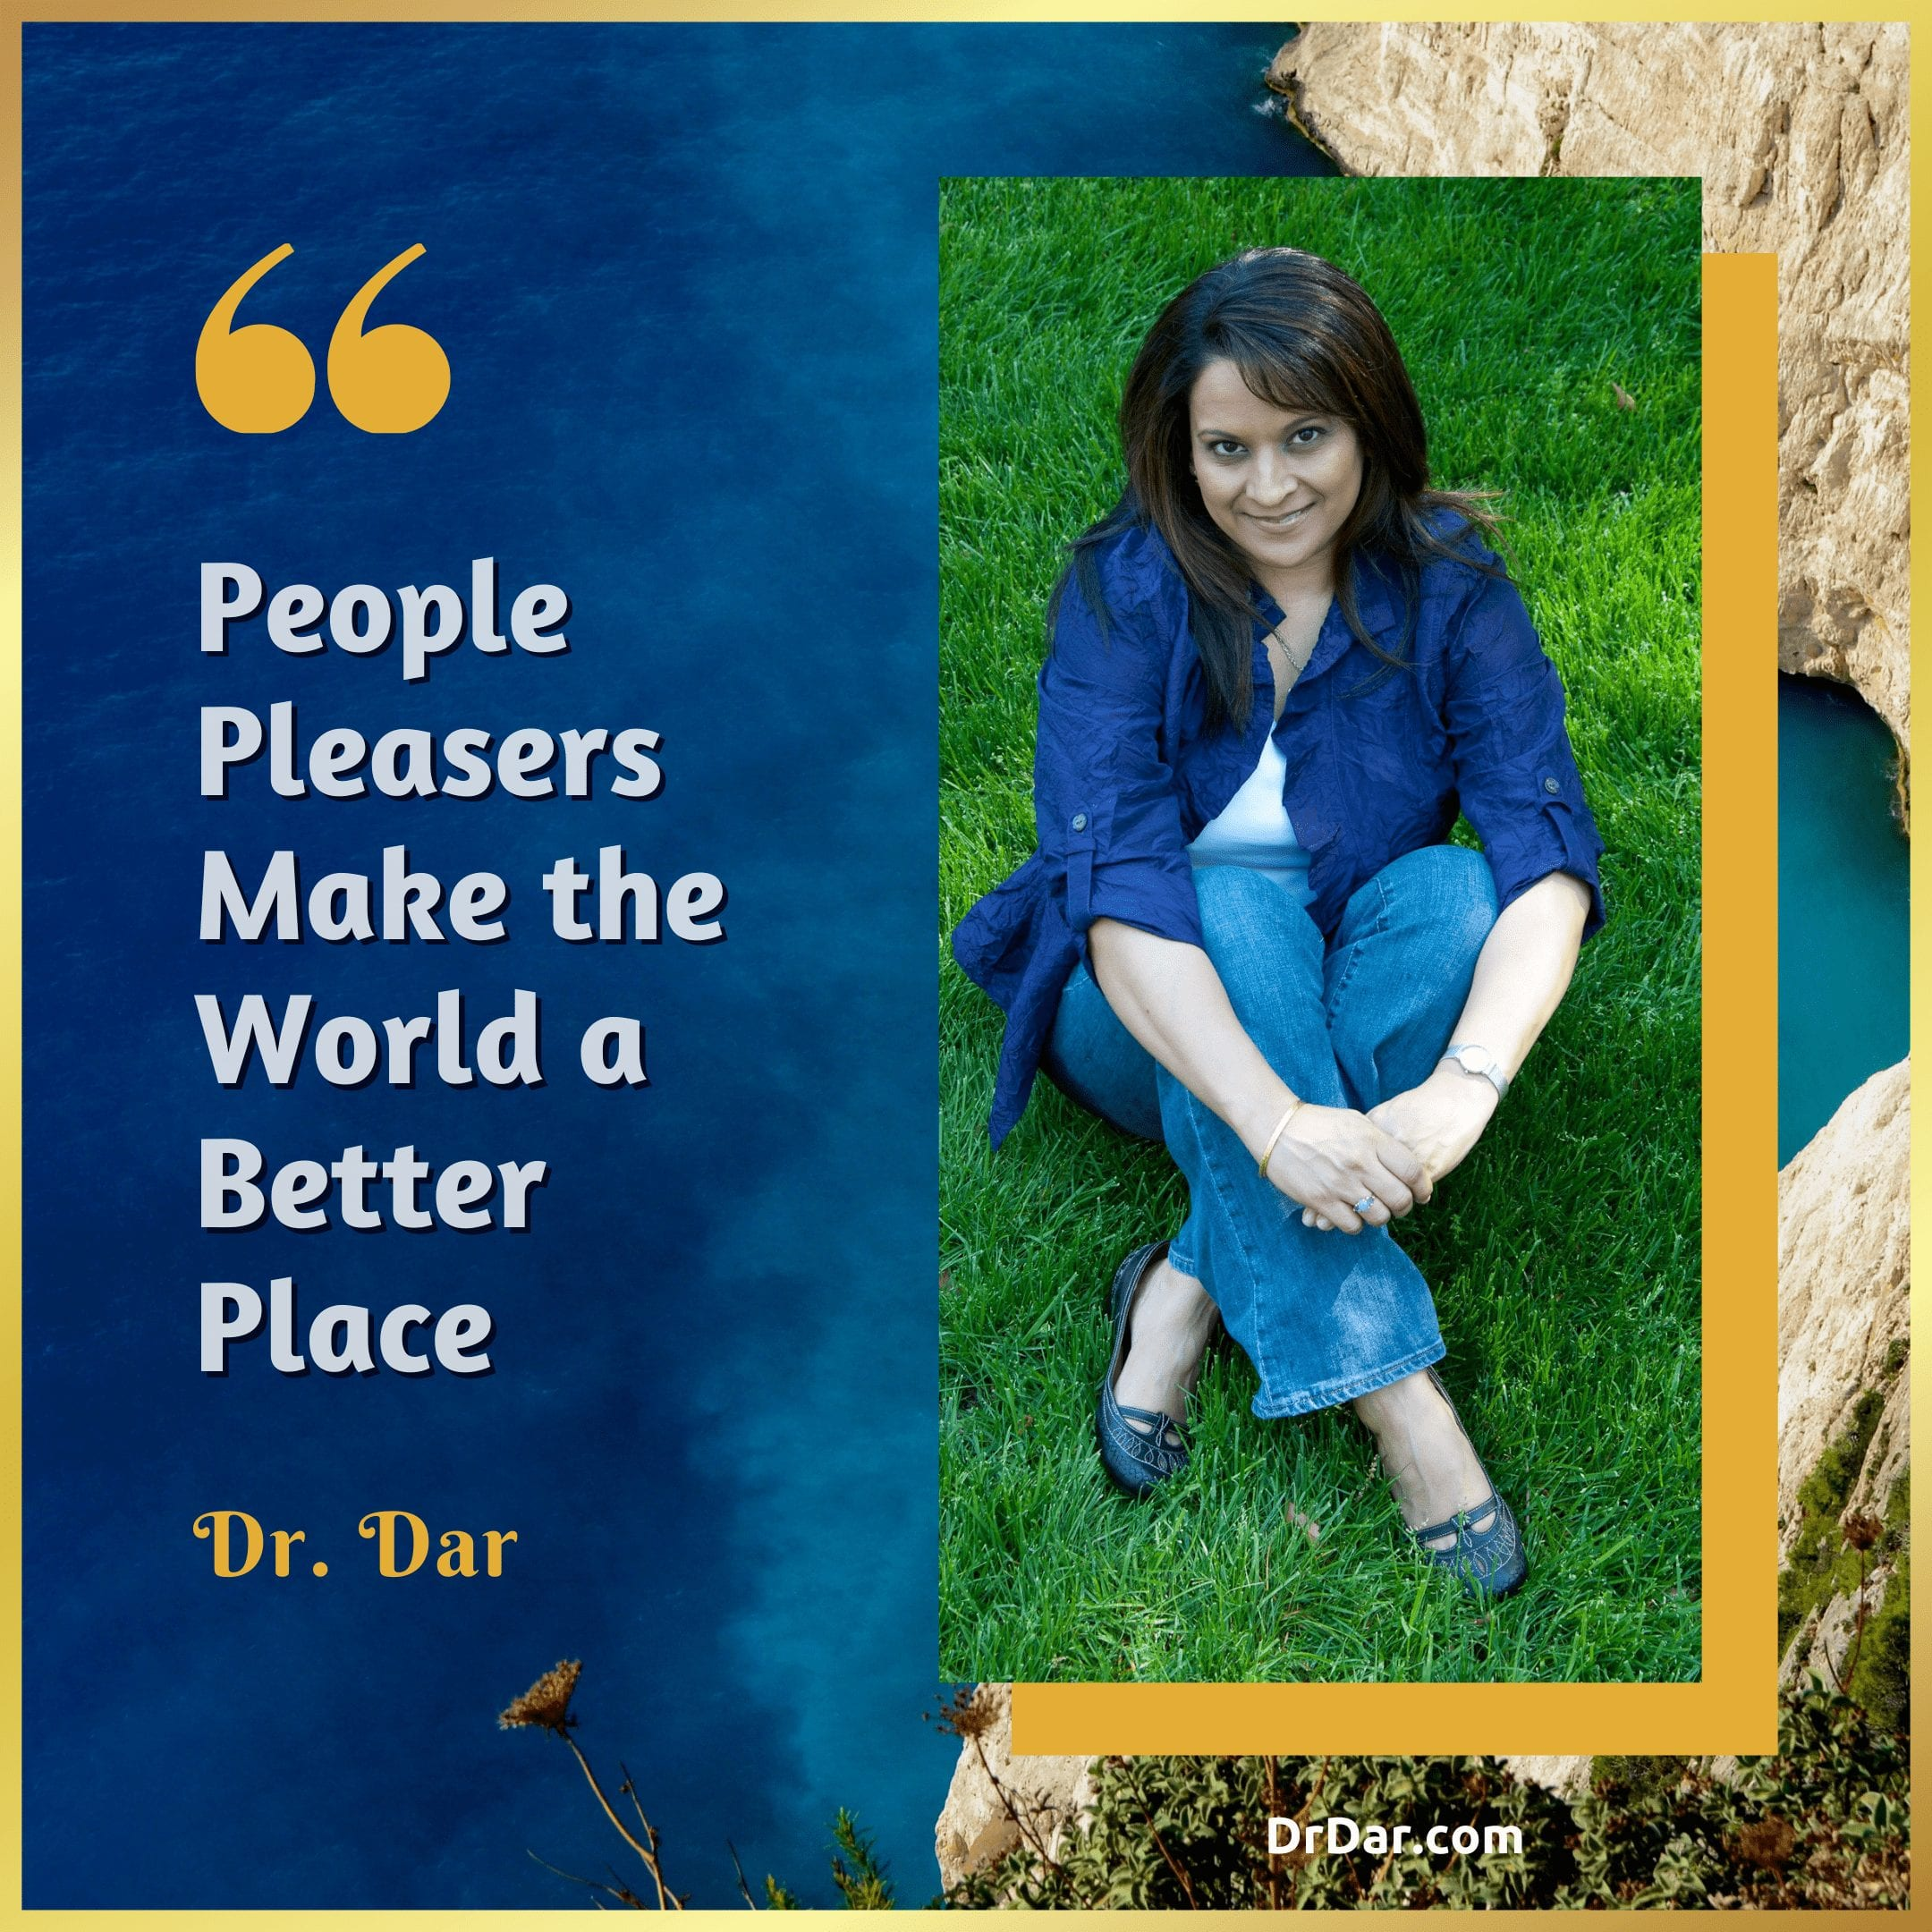 Contact Dr. Dar - Life &Amp; Relationship Coach For People Pleasers, Empaths, And Sensitives